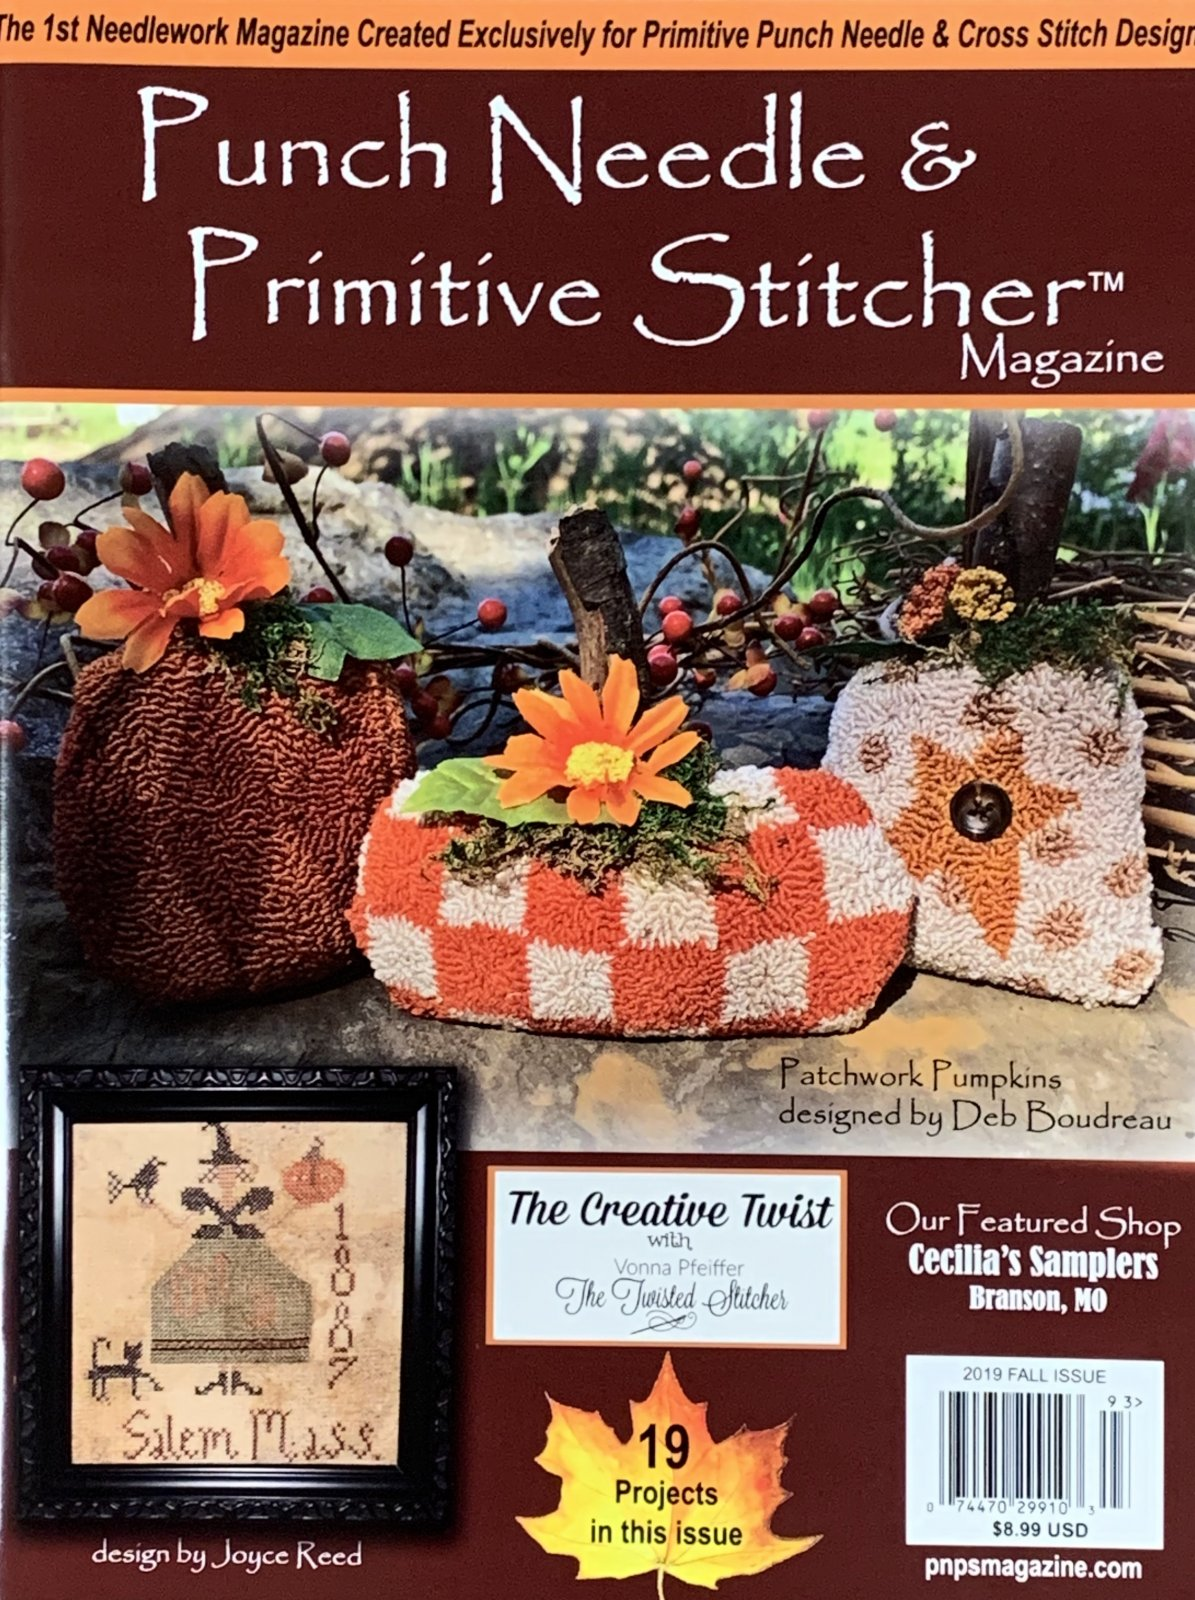 Punch Needle & Primitive Stitcher-Fall 2019